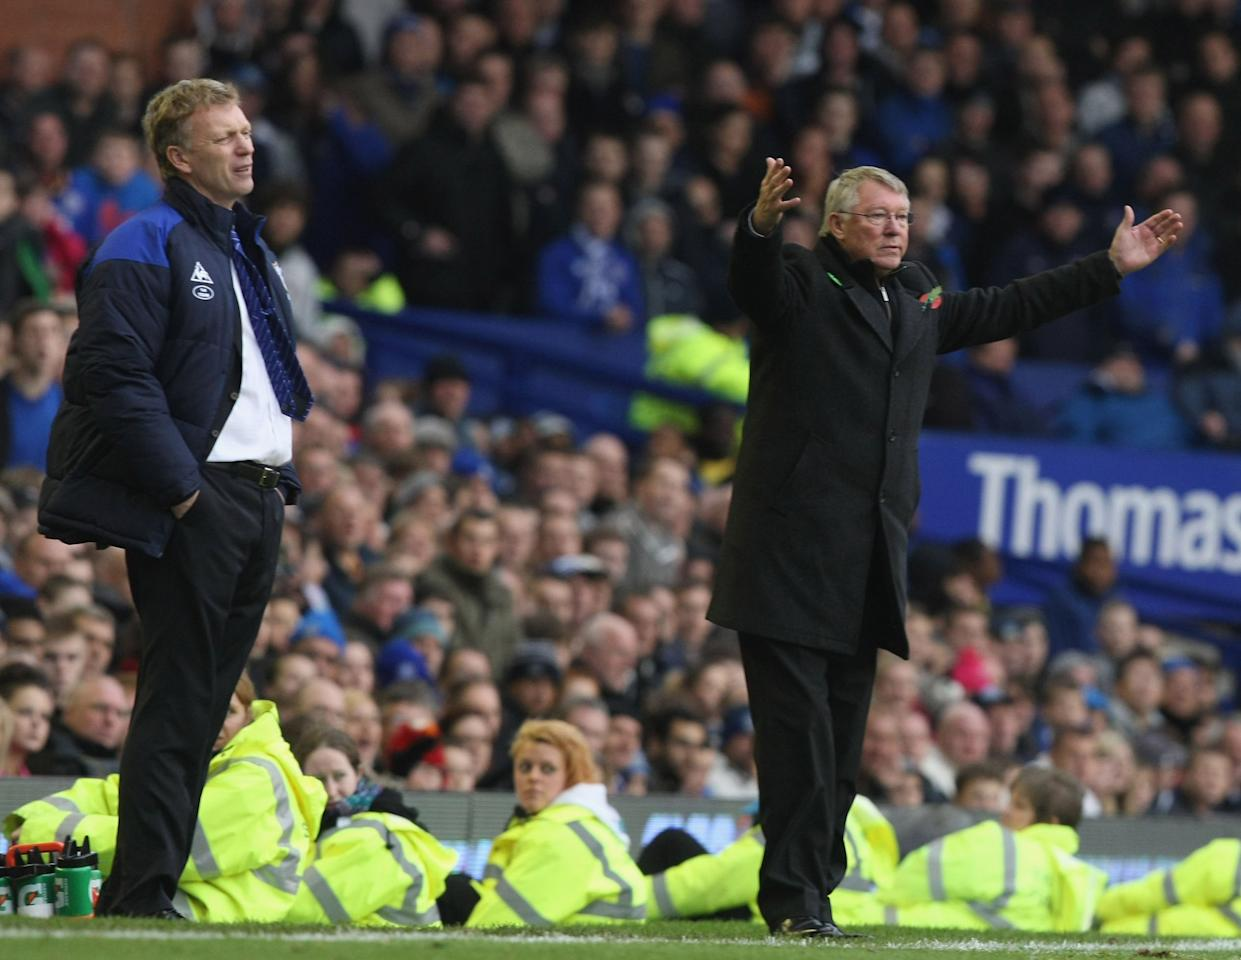 LIVERPOOL, ENGLAND - OCTOBER 29:  Sir Alex Ferguson (R) of Manchester United and David Moyes of Everton watch from the touchline during the Barclays Premier League match between Everton and Manchester United at Goodison Park on October 29, 2011 in Liverpool, England.  (Photo by Matthew Peters/Man Utd via Getty Images)